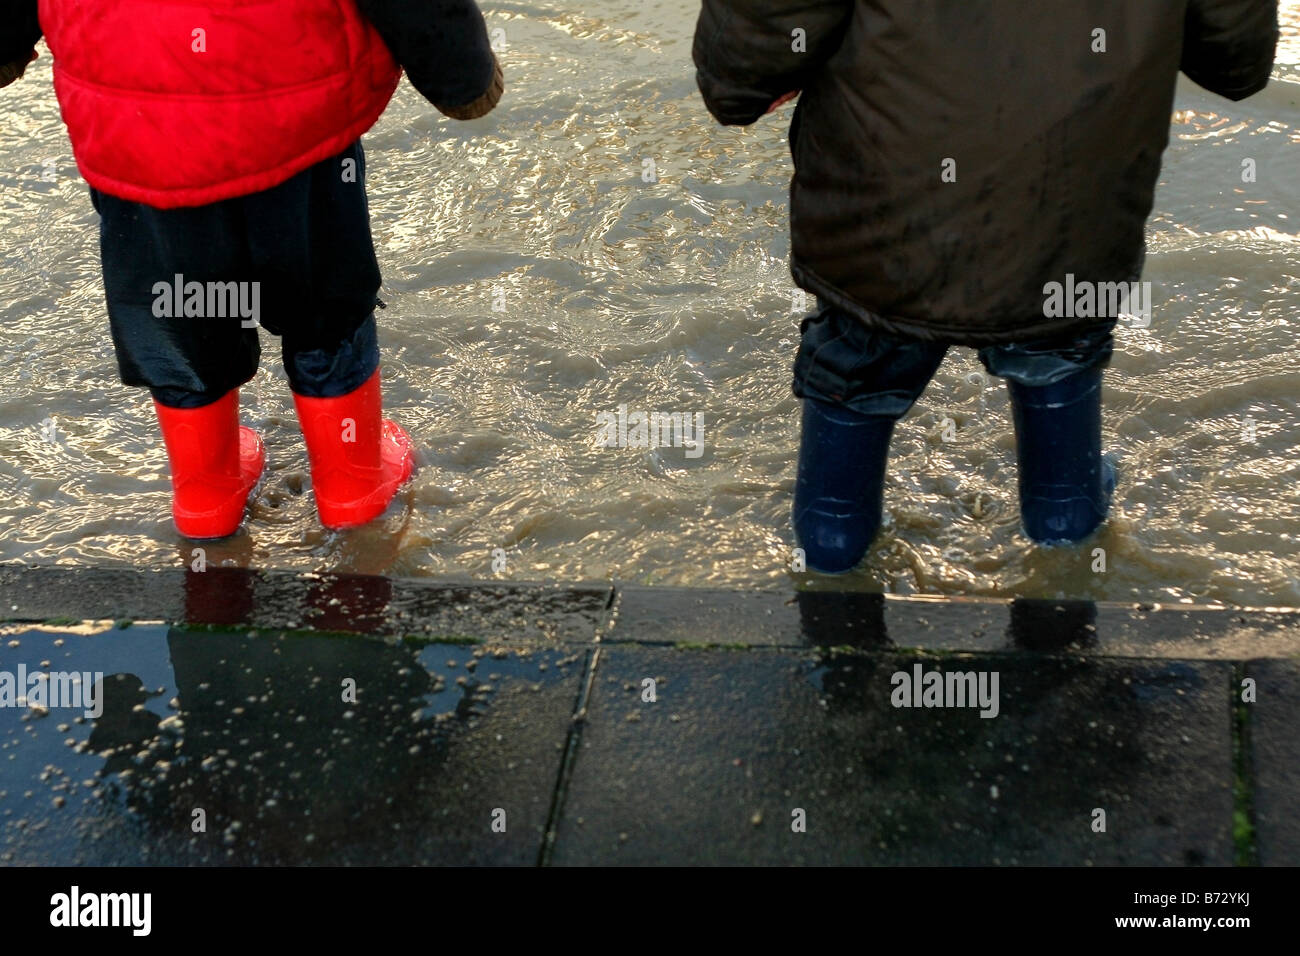 children wearing wellington boots and playing in puddles - Stock Image